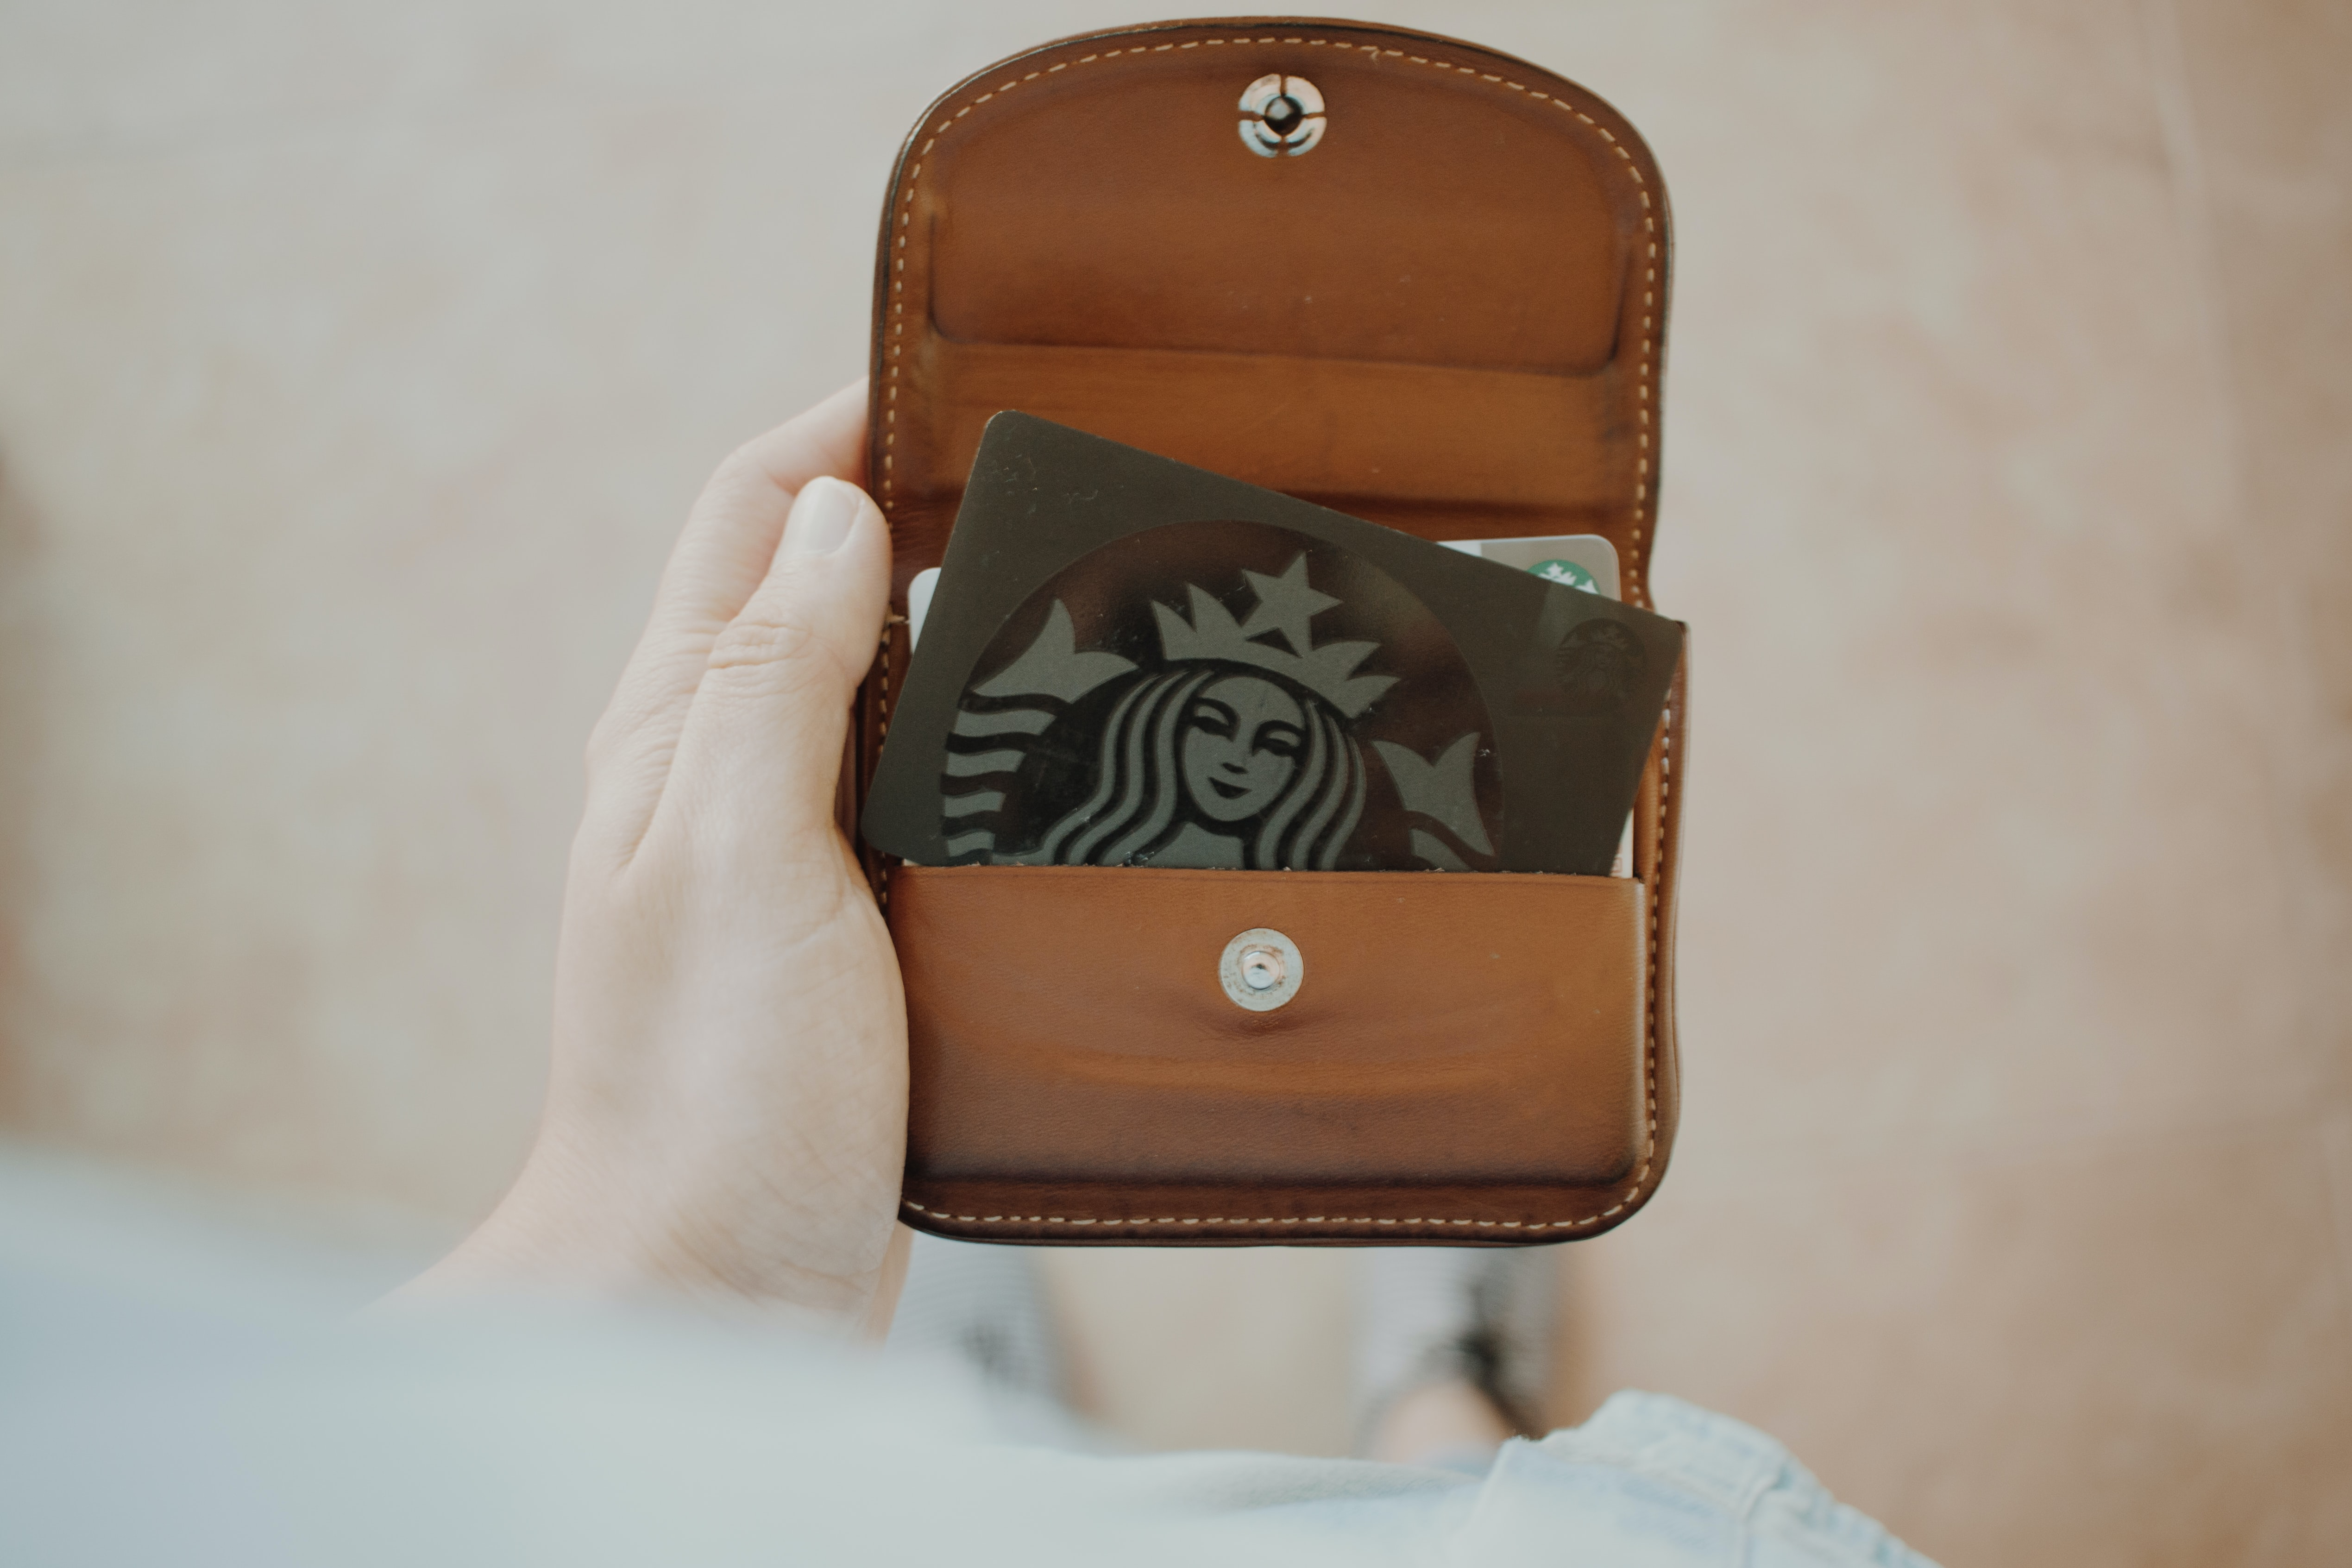 green Starbucks gift card inside brown leather wallet